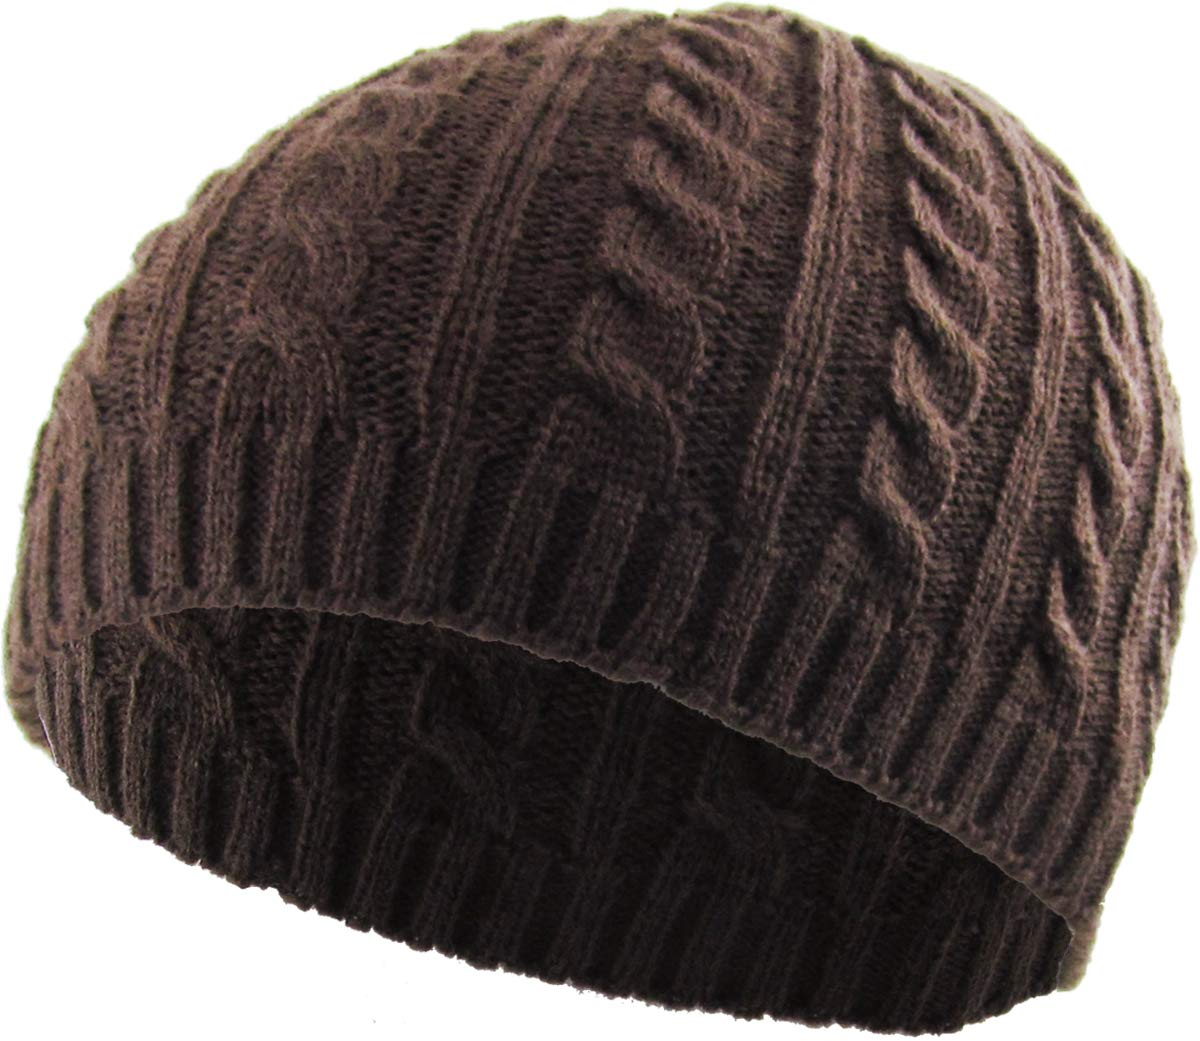 78089d4c9d7 Cable Knit Beanie Year Round Classic Unisex Style Everyday Comfy One Size  Fit